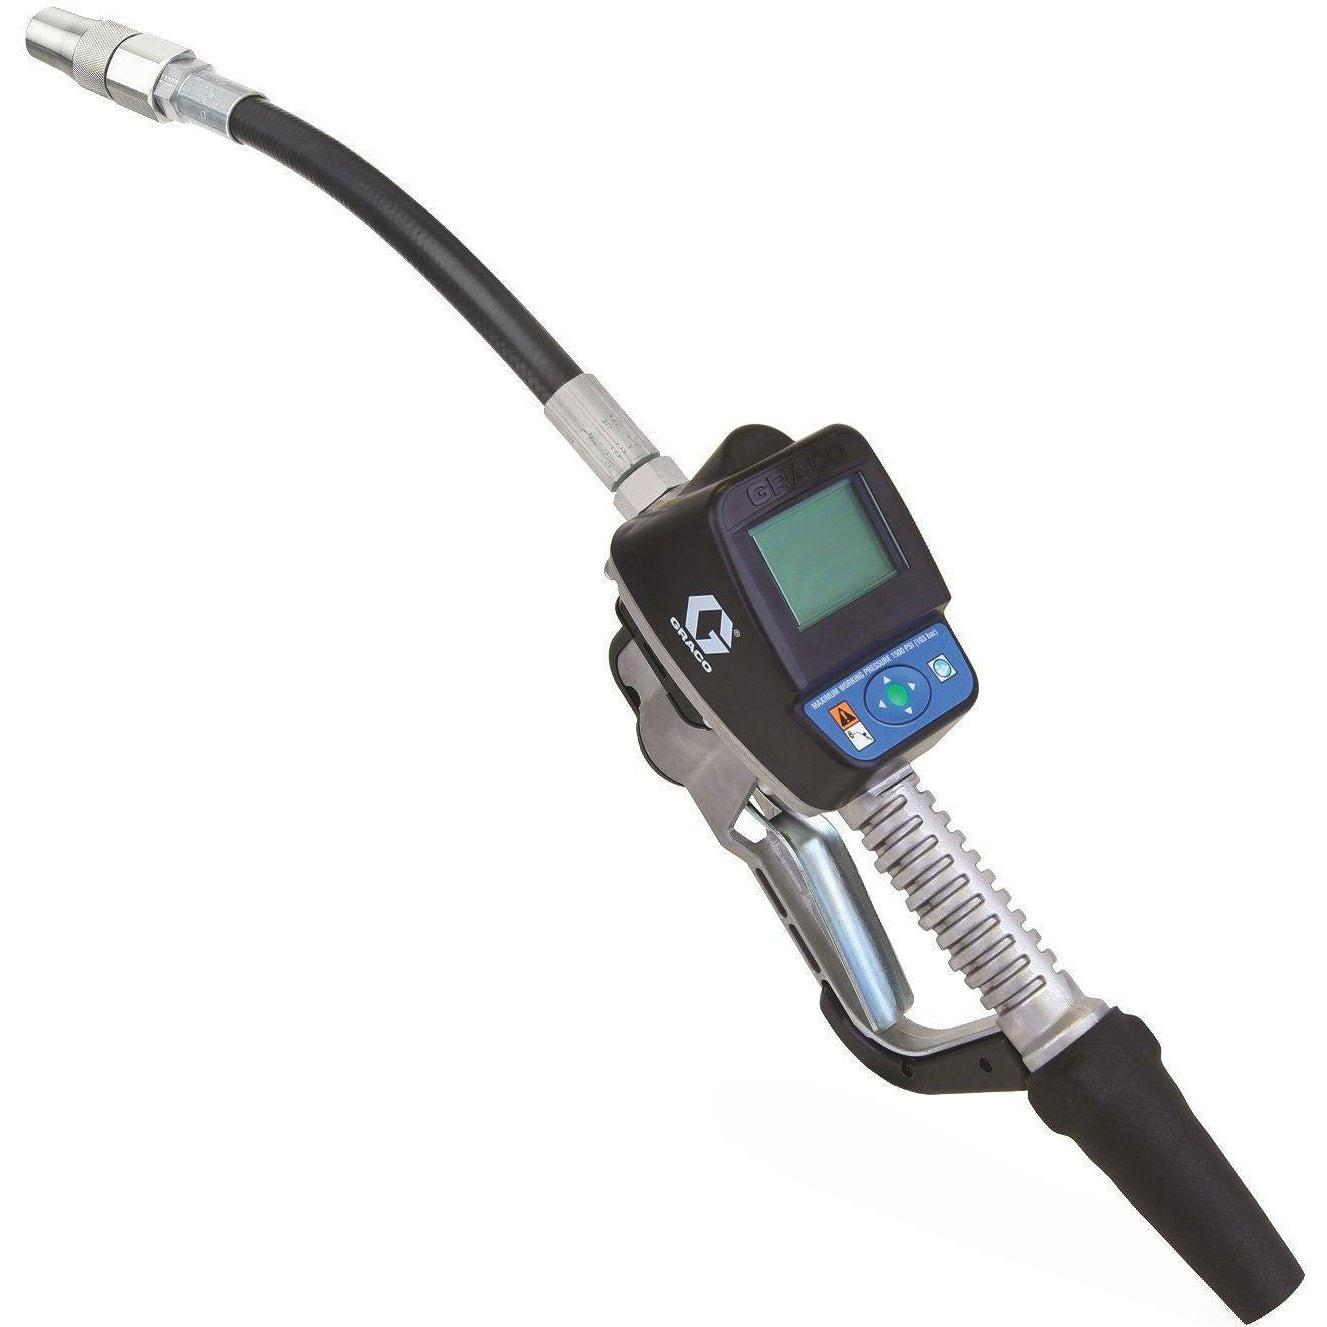 "24H129-Graco 24H129 Sdm15 Series Electronic Manual Oil/Anti-Freeze Meter - Flexible Extension - 3/4"" Inlet - Bspt-Order-Online-Fireball-Equipment"